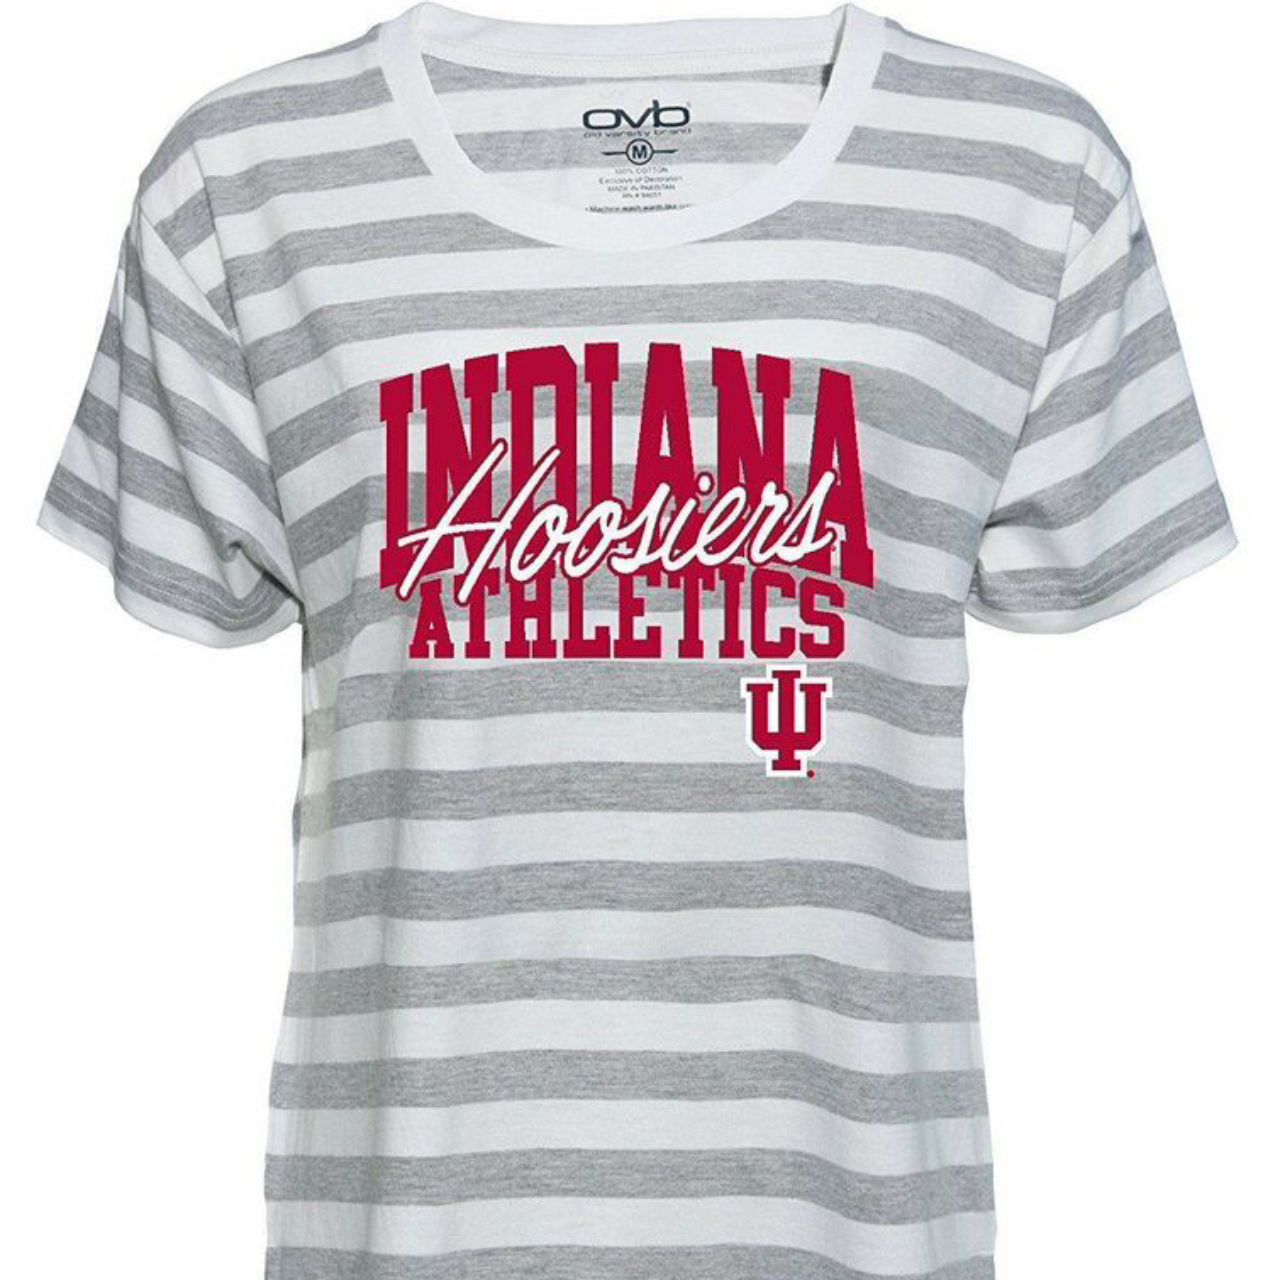 Product Image 1 - Indiana Hoosiers T-Shirt Womens Large